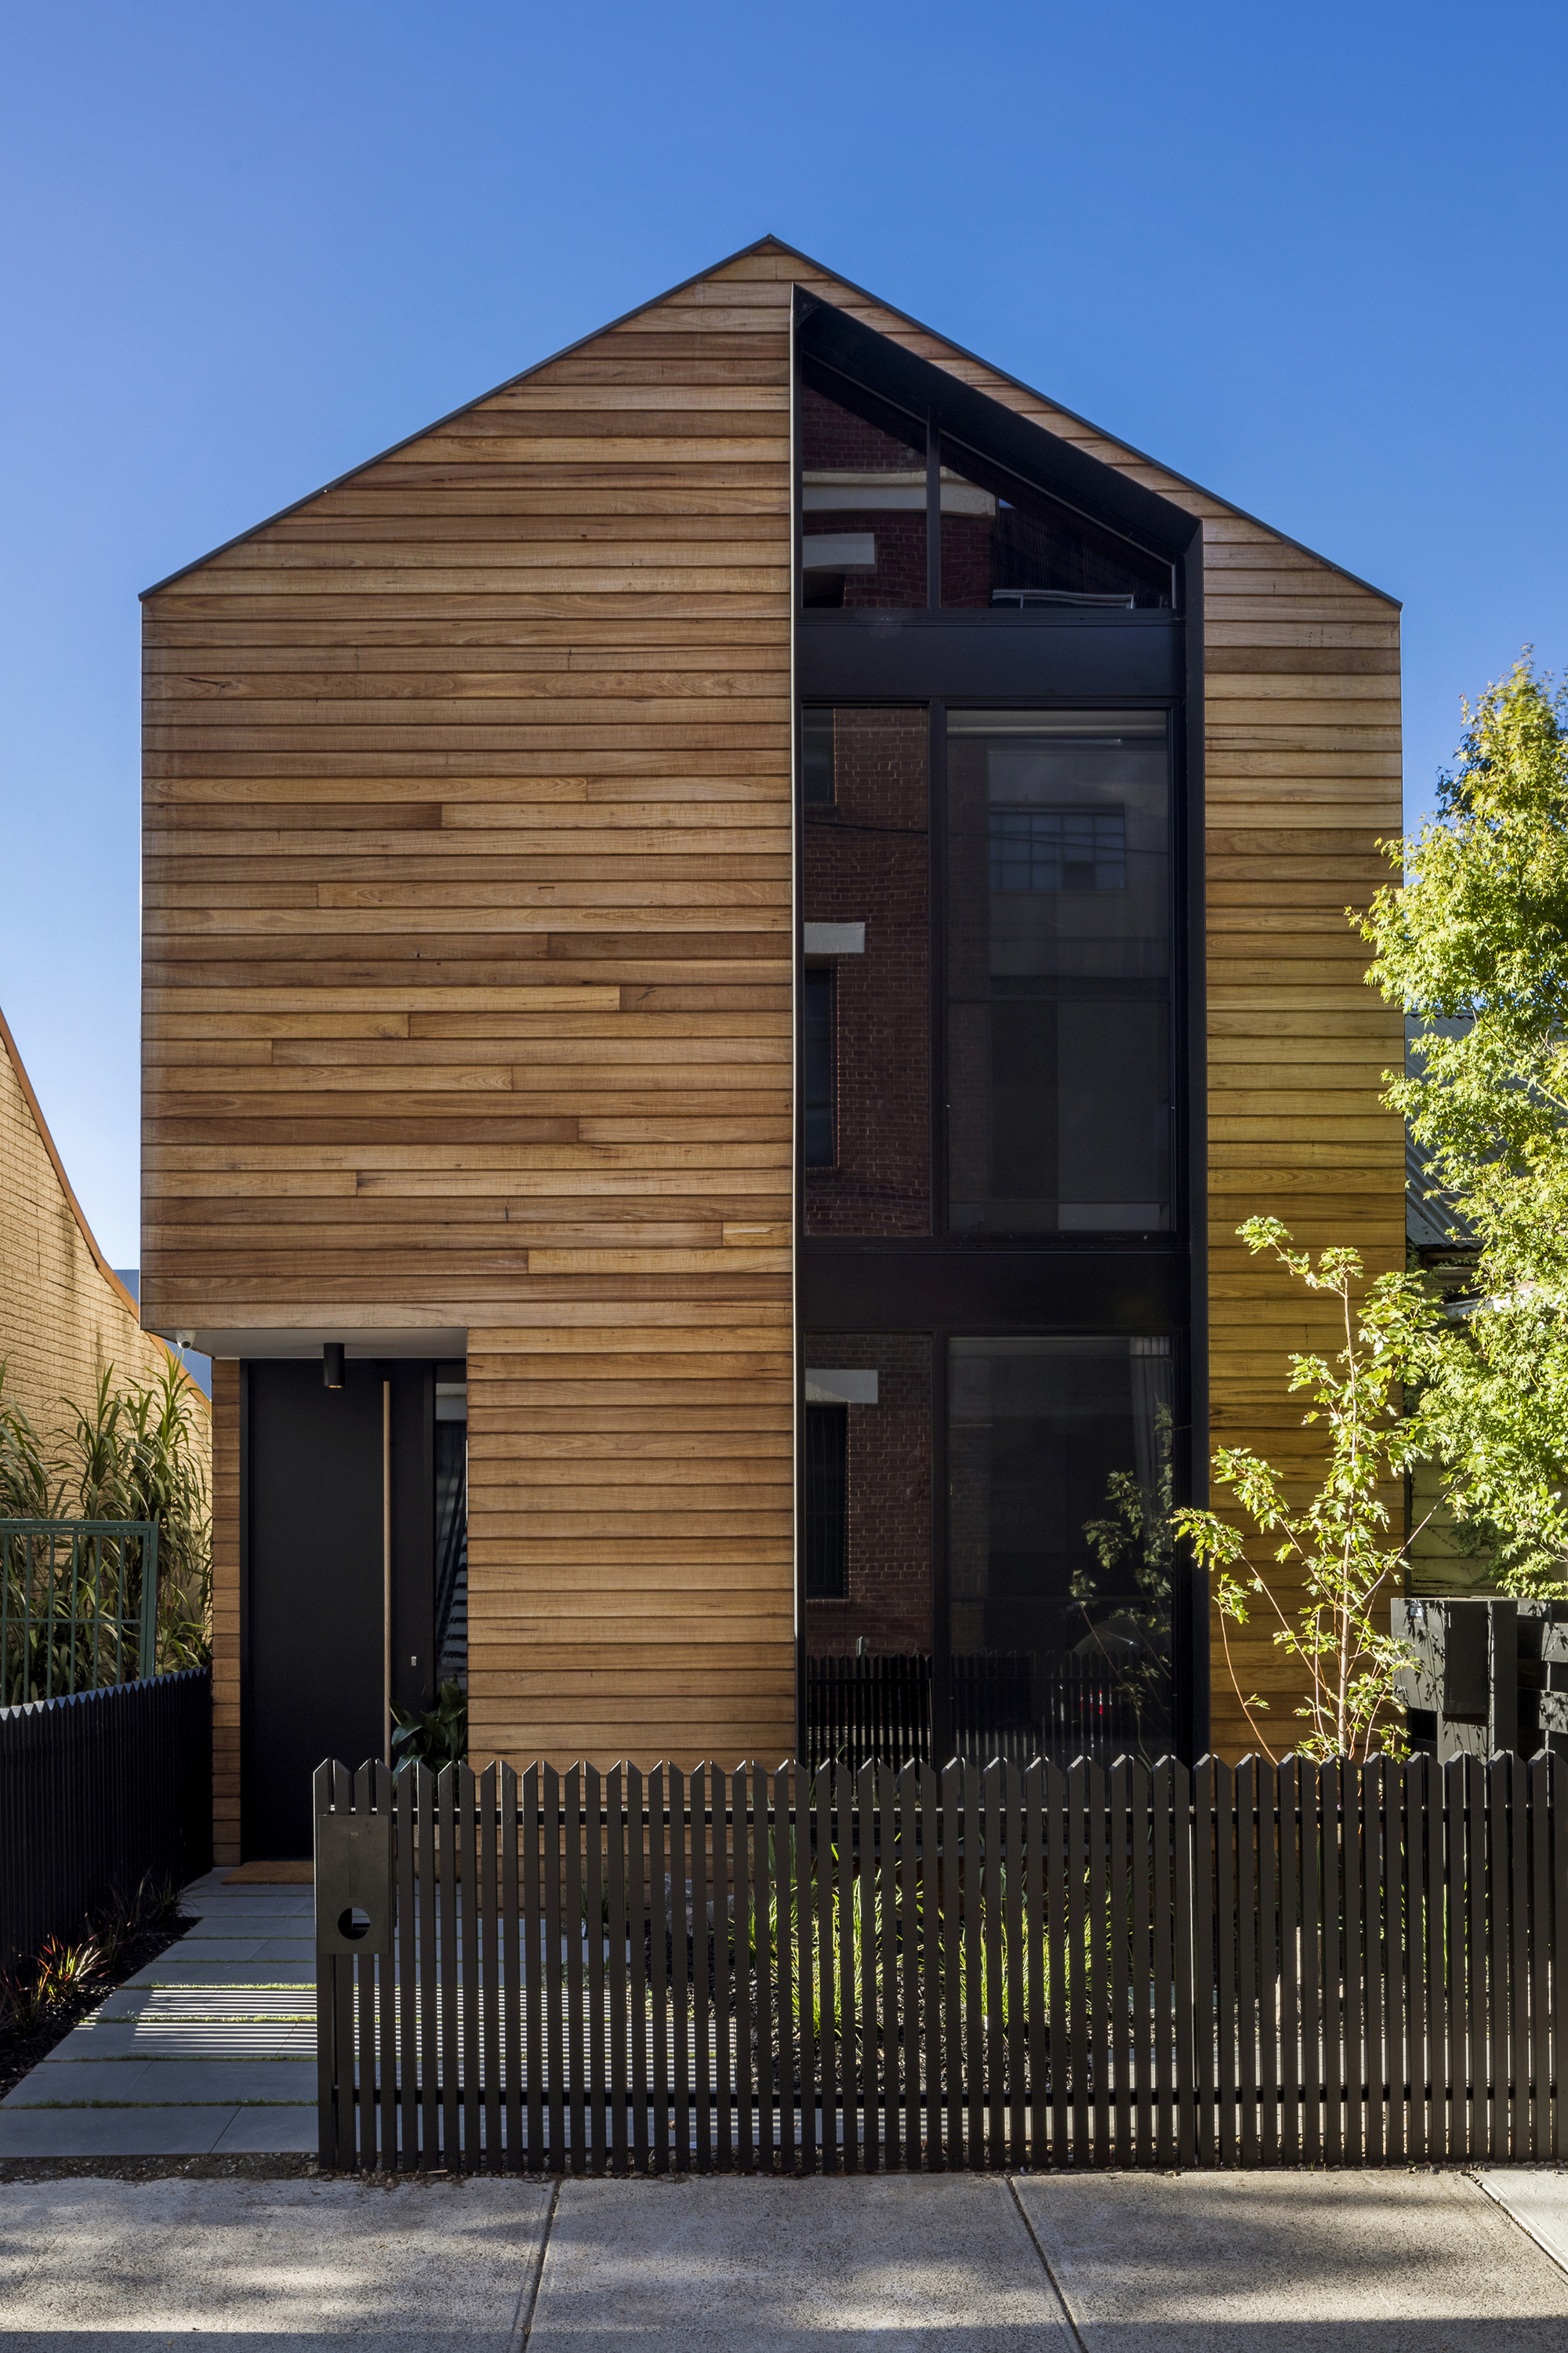 Residencia T2 / fyc architects